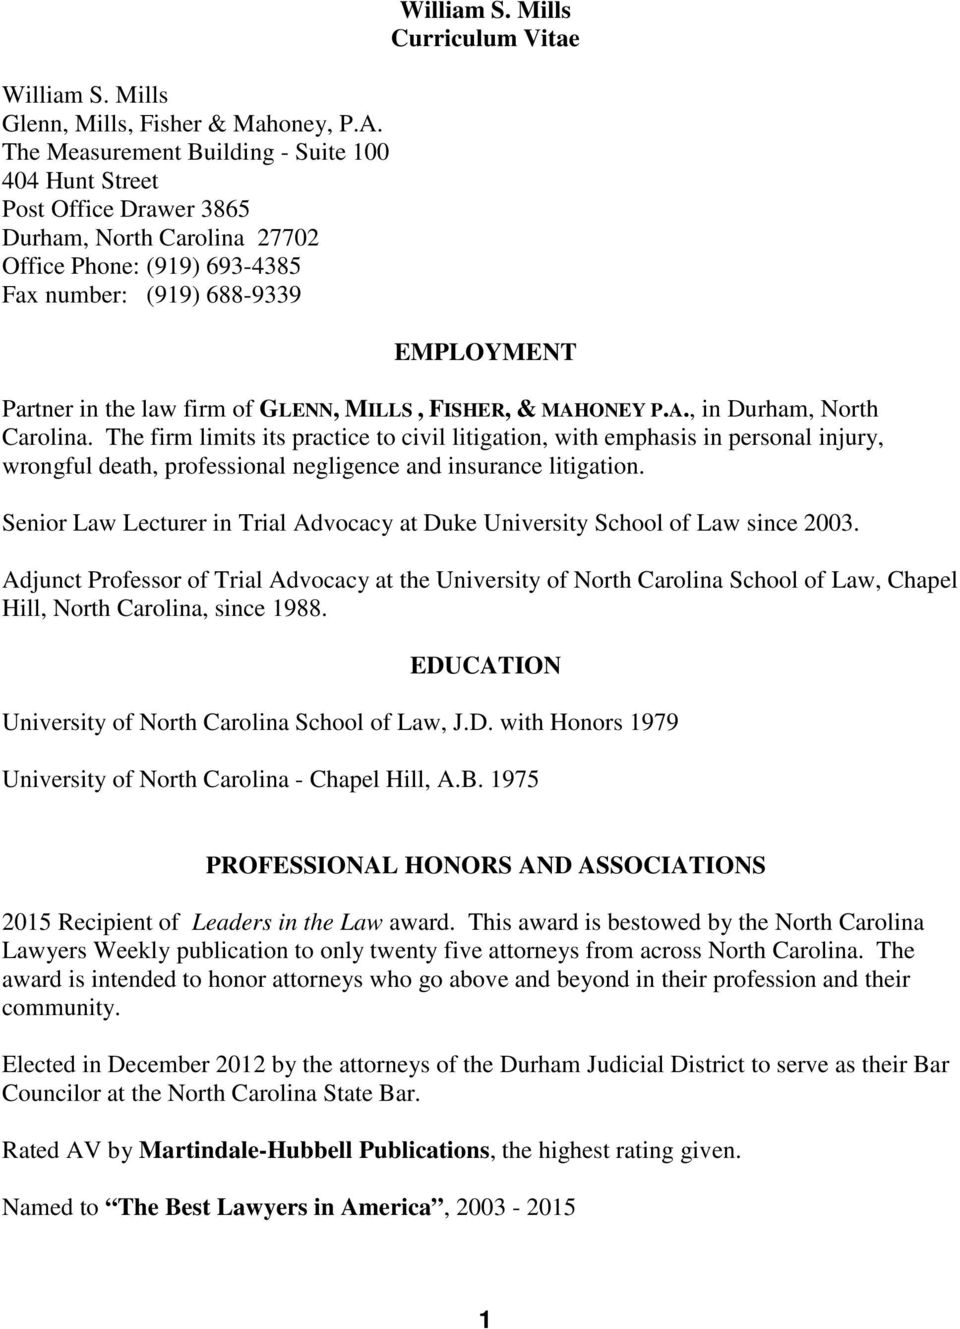 Mills Curriculum Vitae EMPLOYMENT Partner in the law firm of GLENN, MILLS, FISHER, & MAHONEY P.A., in Durham, North Carolina.